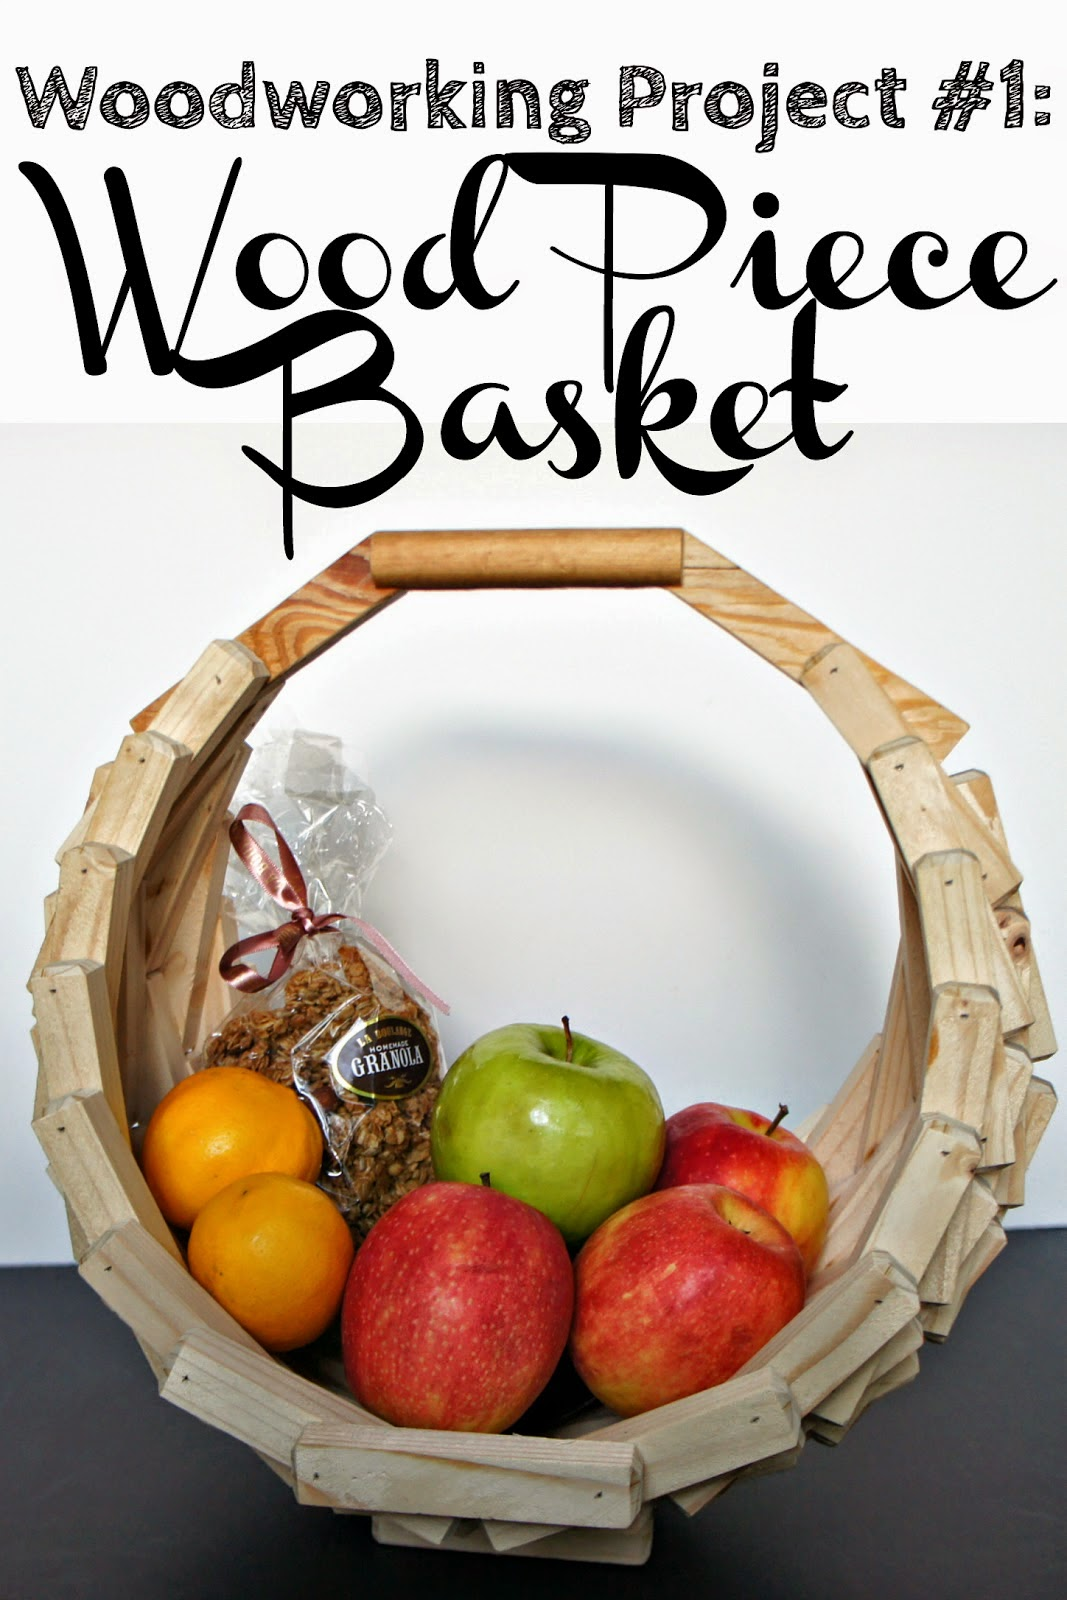 DIY Wood Piece Basket, shared by Vintage Zest